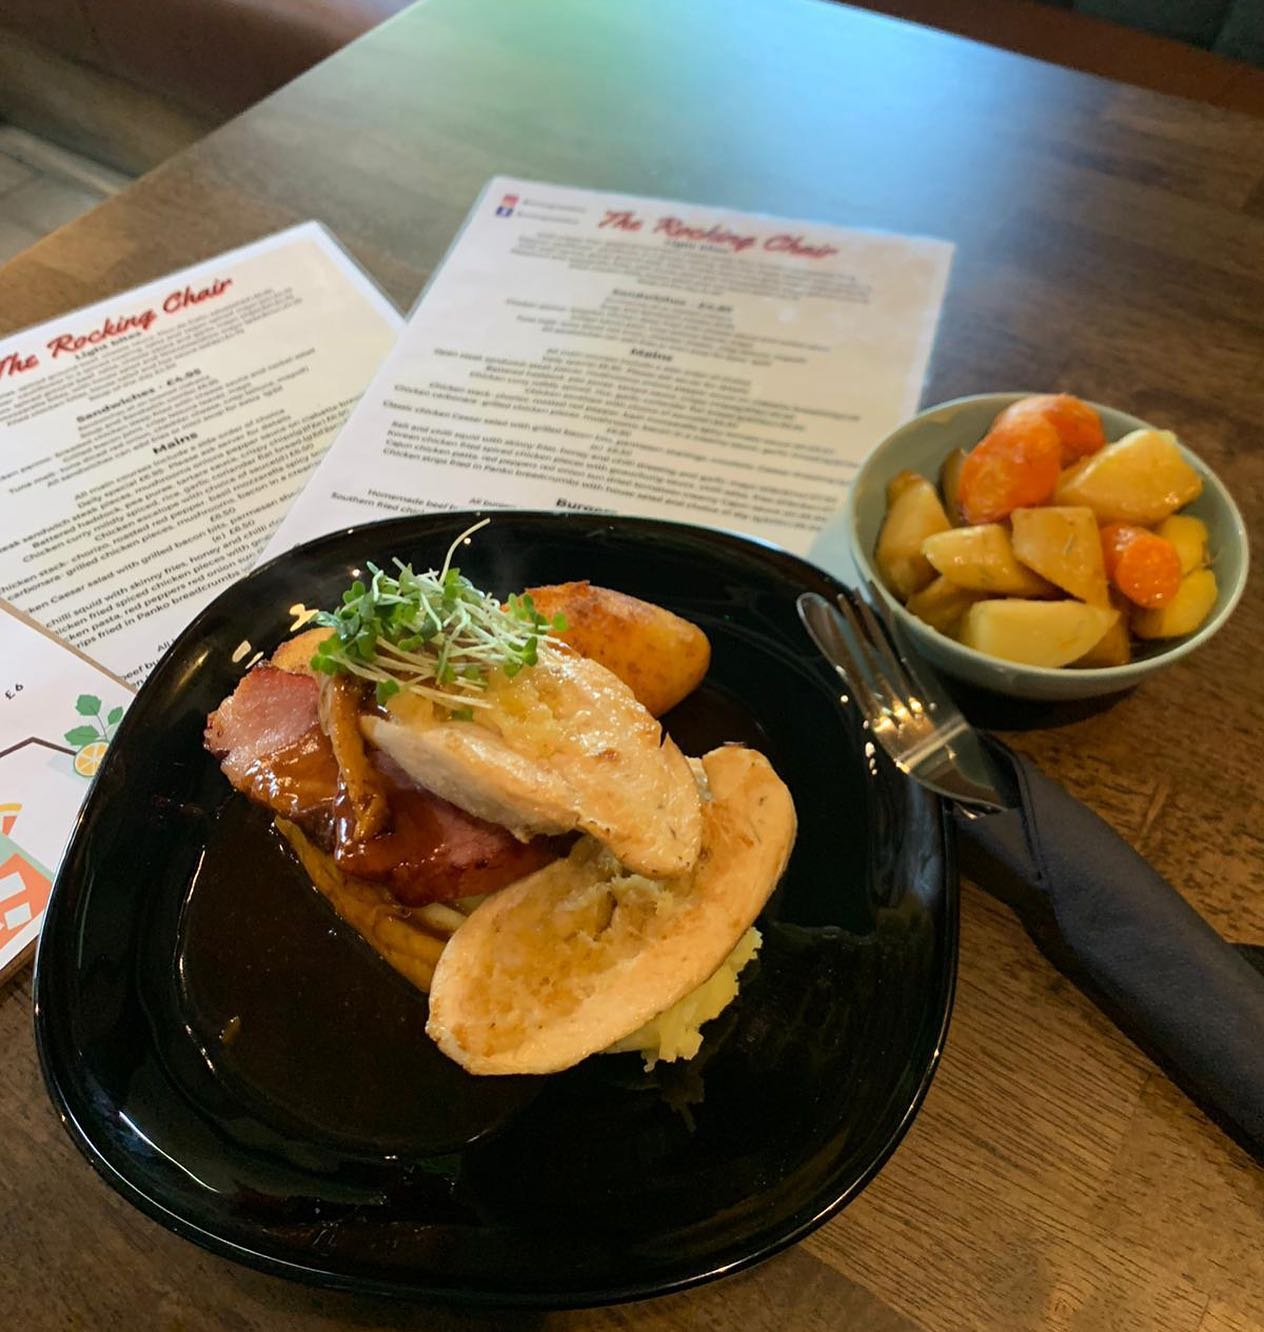 Take a Sunday off cooking and try our delicious Sunday lunch 🤤Sunday lunch special £7 Honey & clove roasted bacon loin Buttery mash Roast potatoes Panfried chicken with a sausage stuffingHoney roasted carrots and parsnipsServing from 12-8pm today!